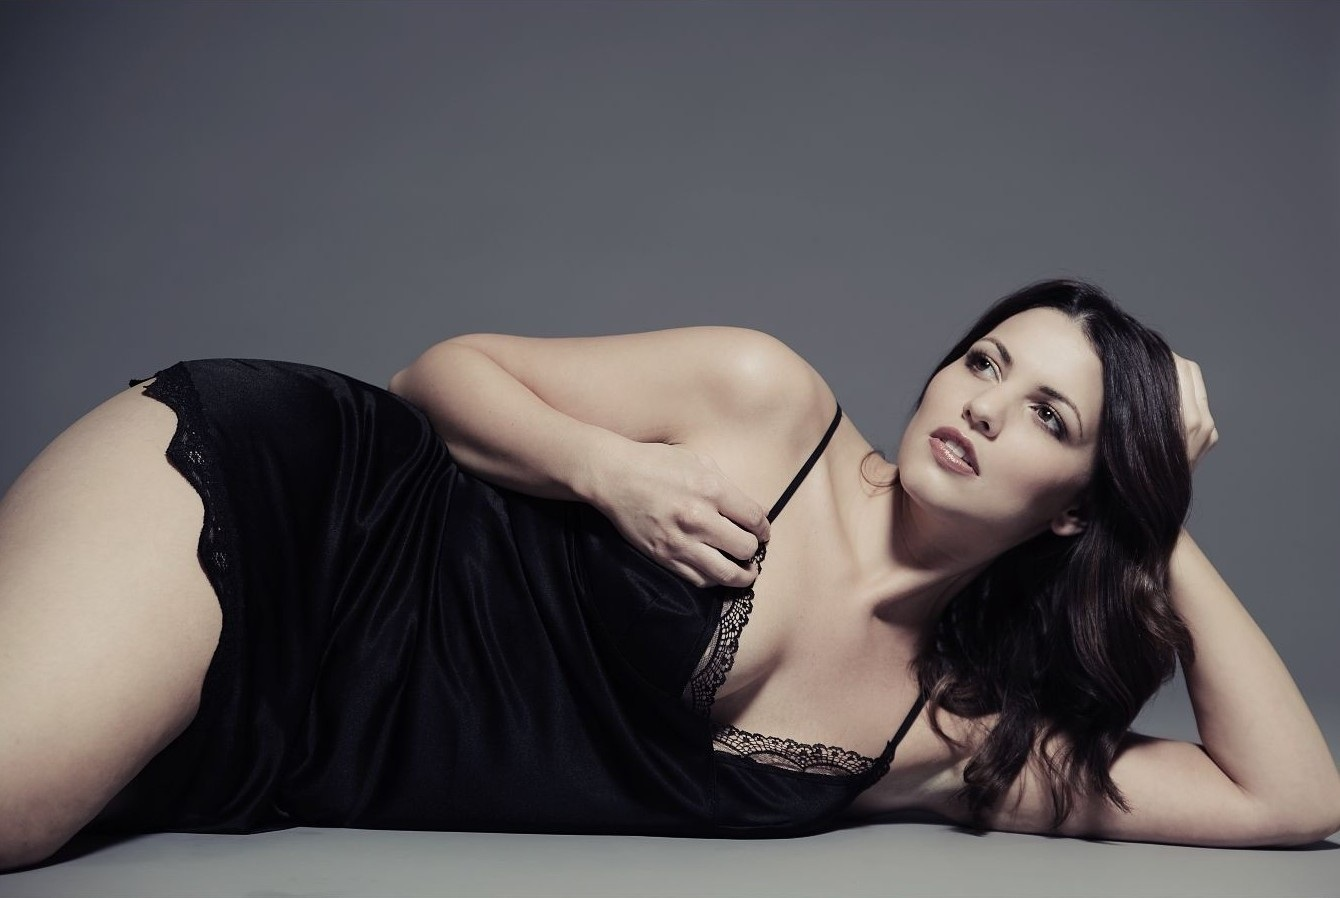 Plus Size Model Wallpaper